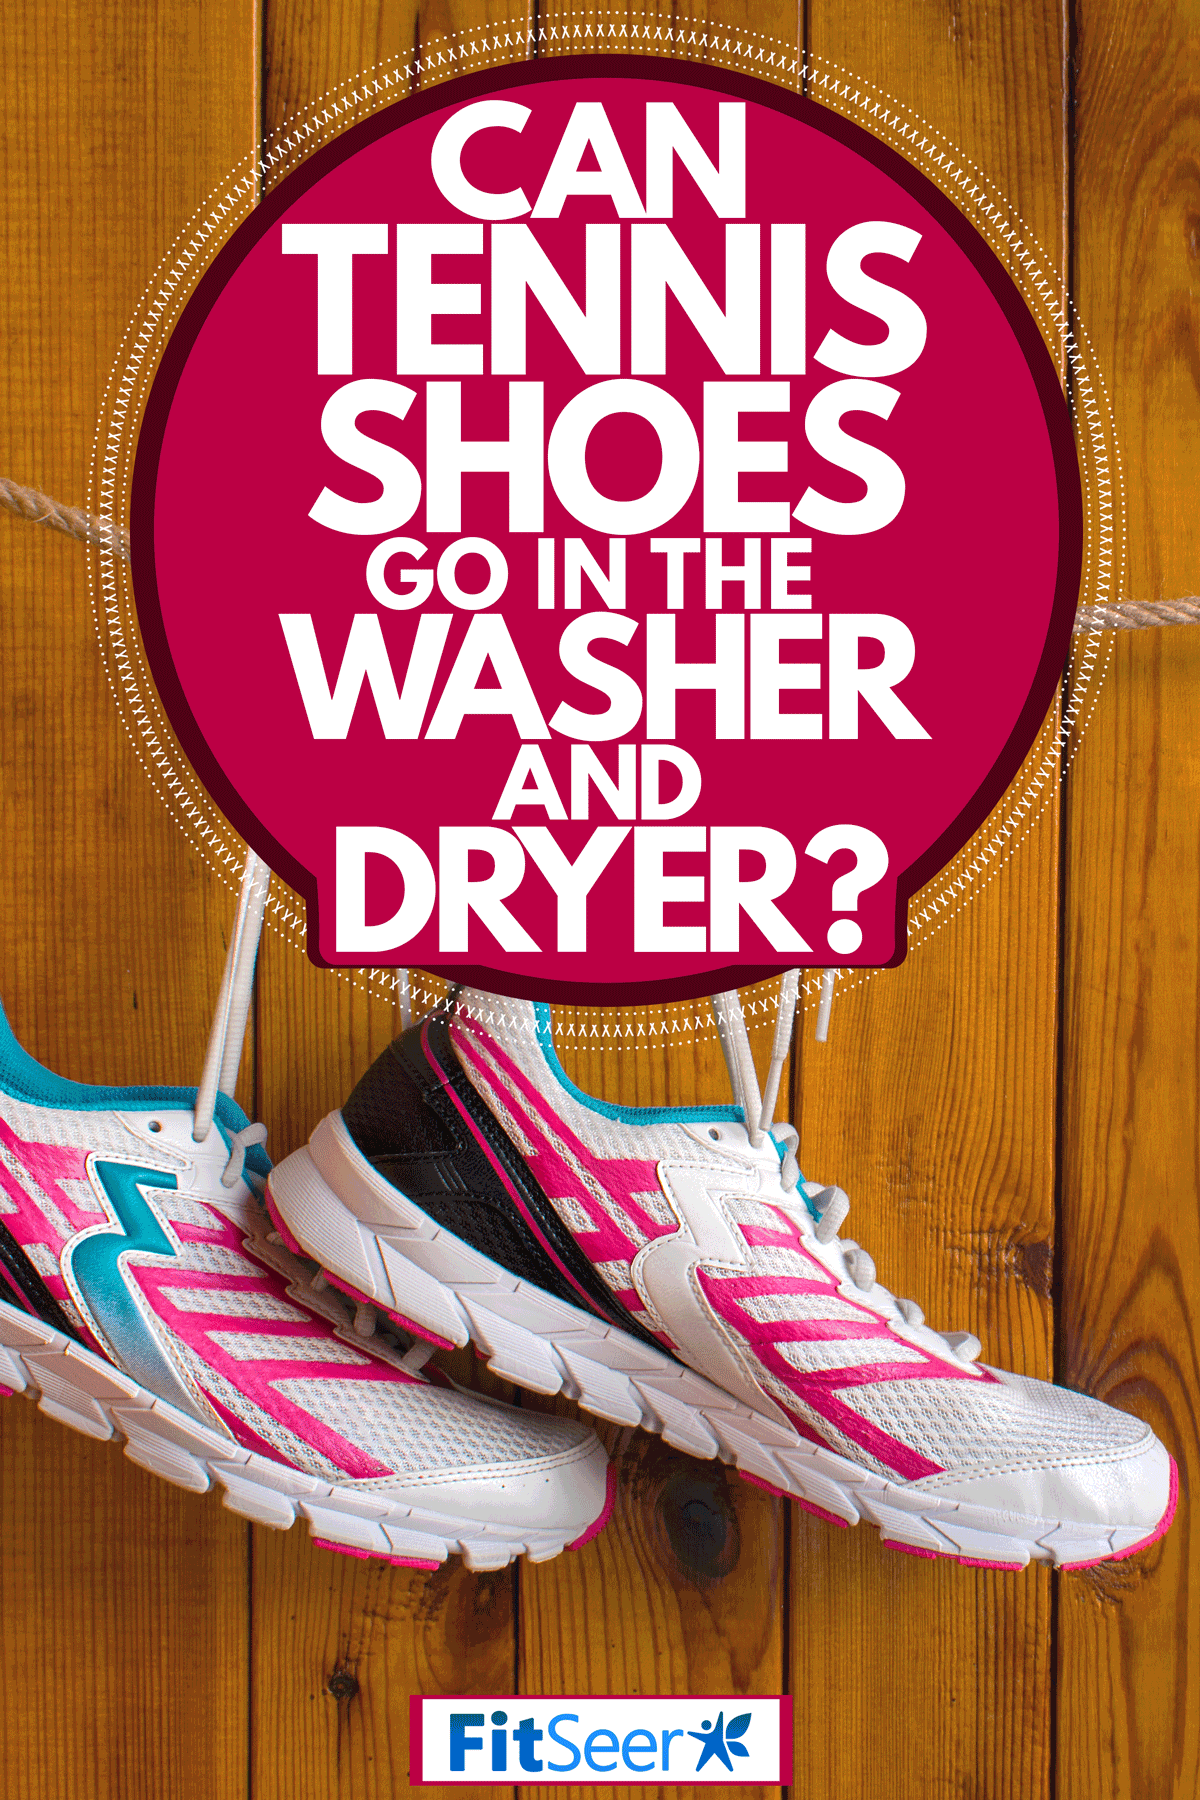 Newly washed tennis shoes hanged outside to dry, Can Tennis Shoes Go In The Washer And Dryer?